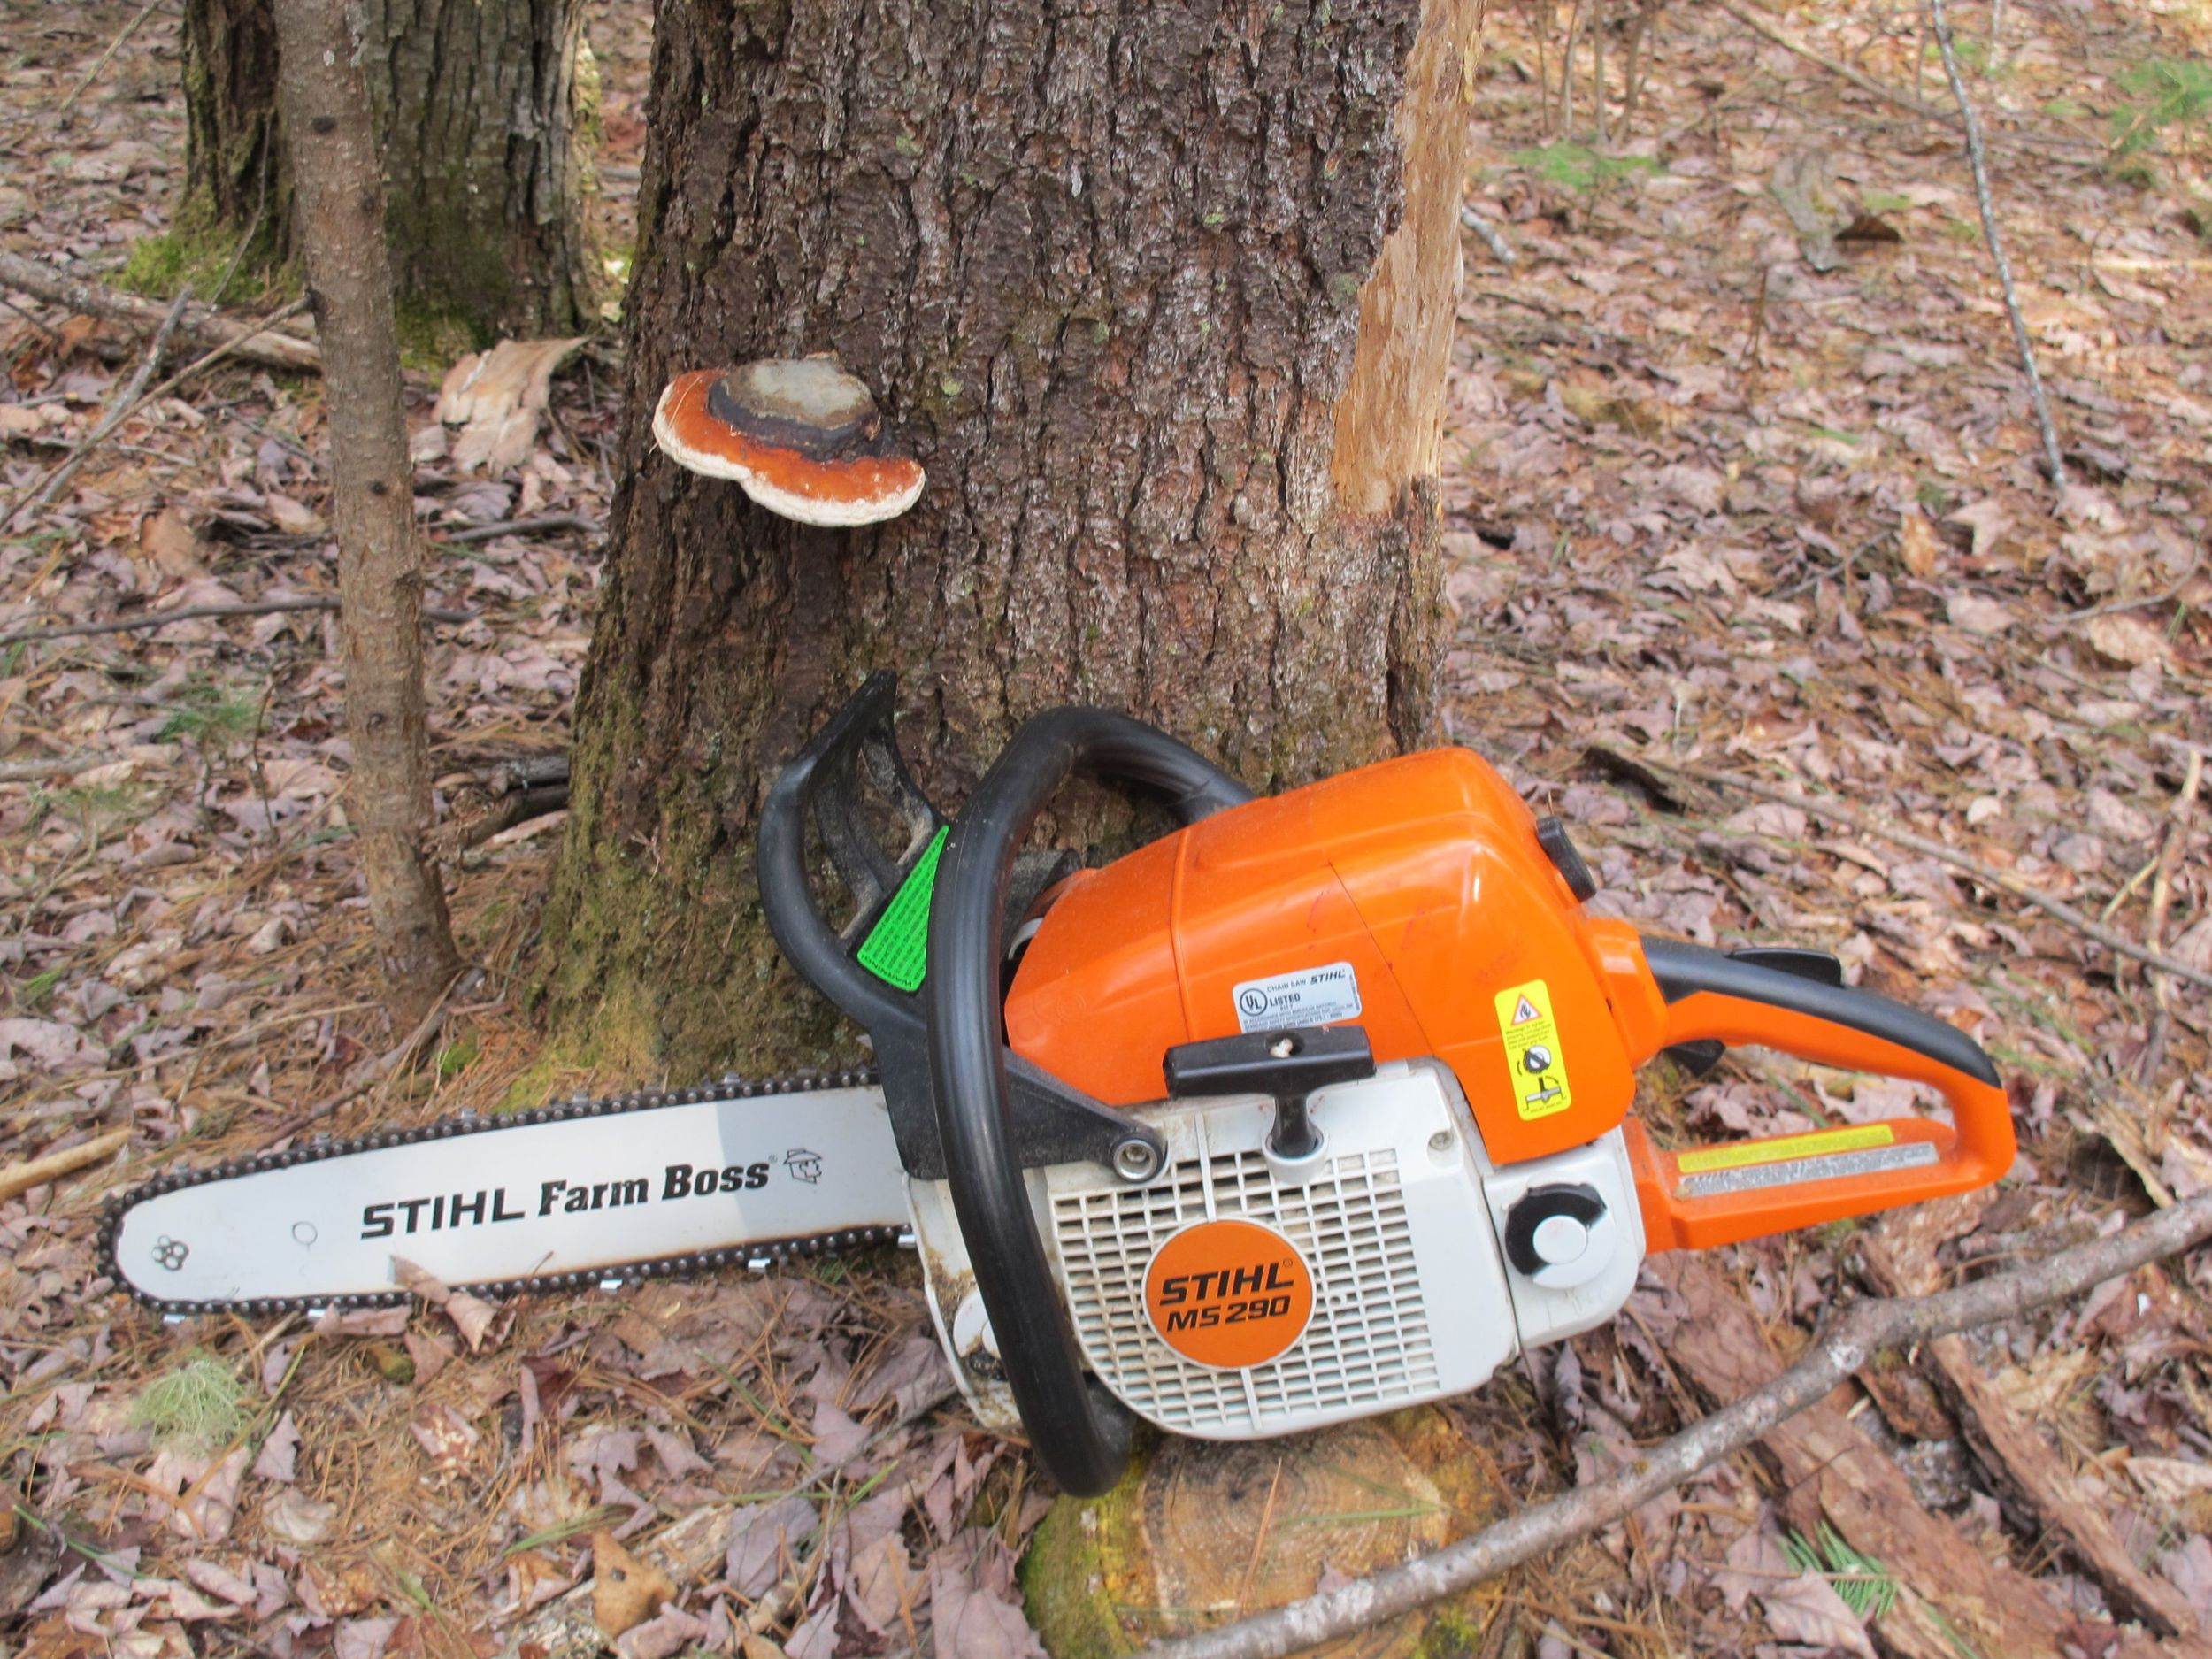 Did Stihl design this chainsaw to match a tree fungus? Or did the fungus evolve this coloration to blend into our modern forest society?